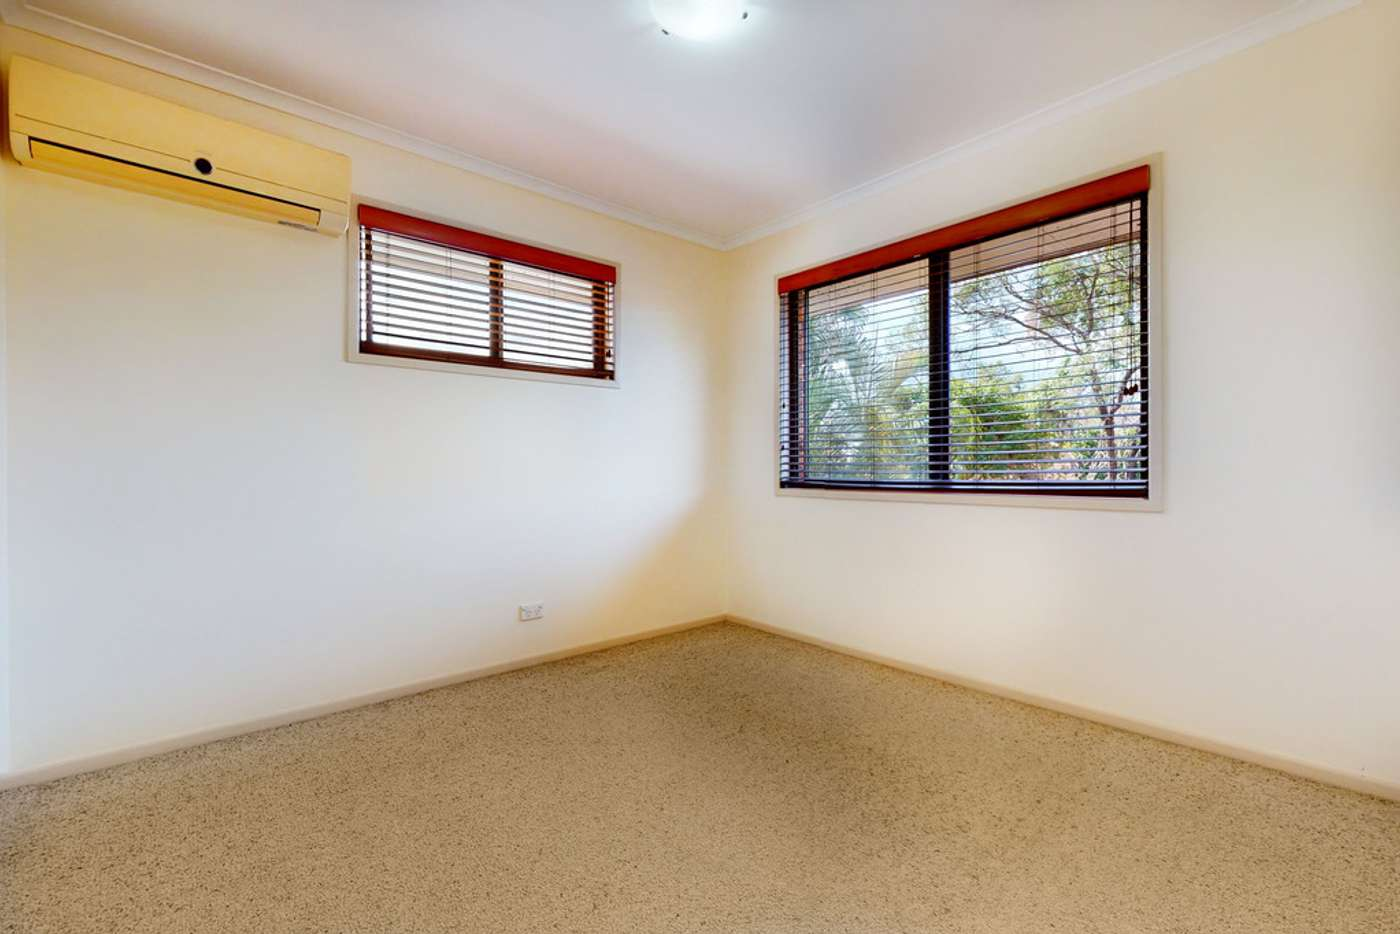 Sixth view of Homely house listing, 21 Bajimba Street, Manly West QLD 4179